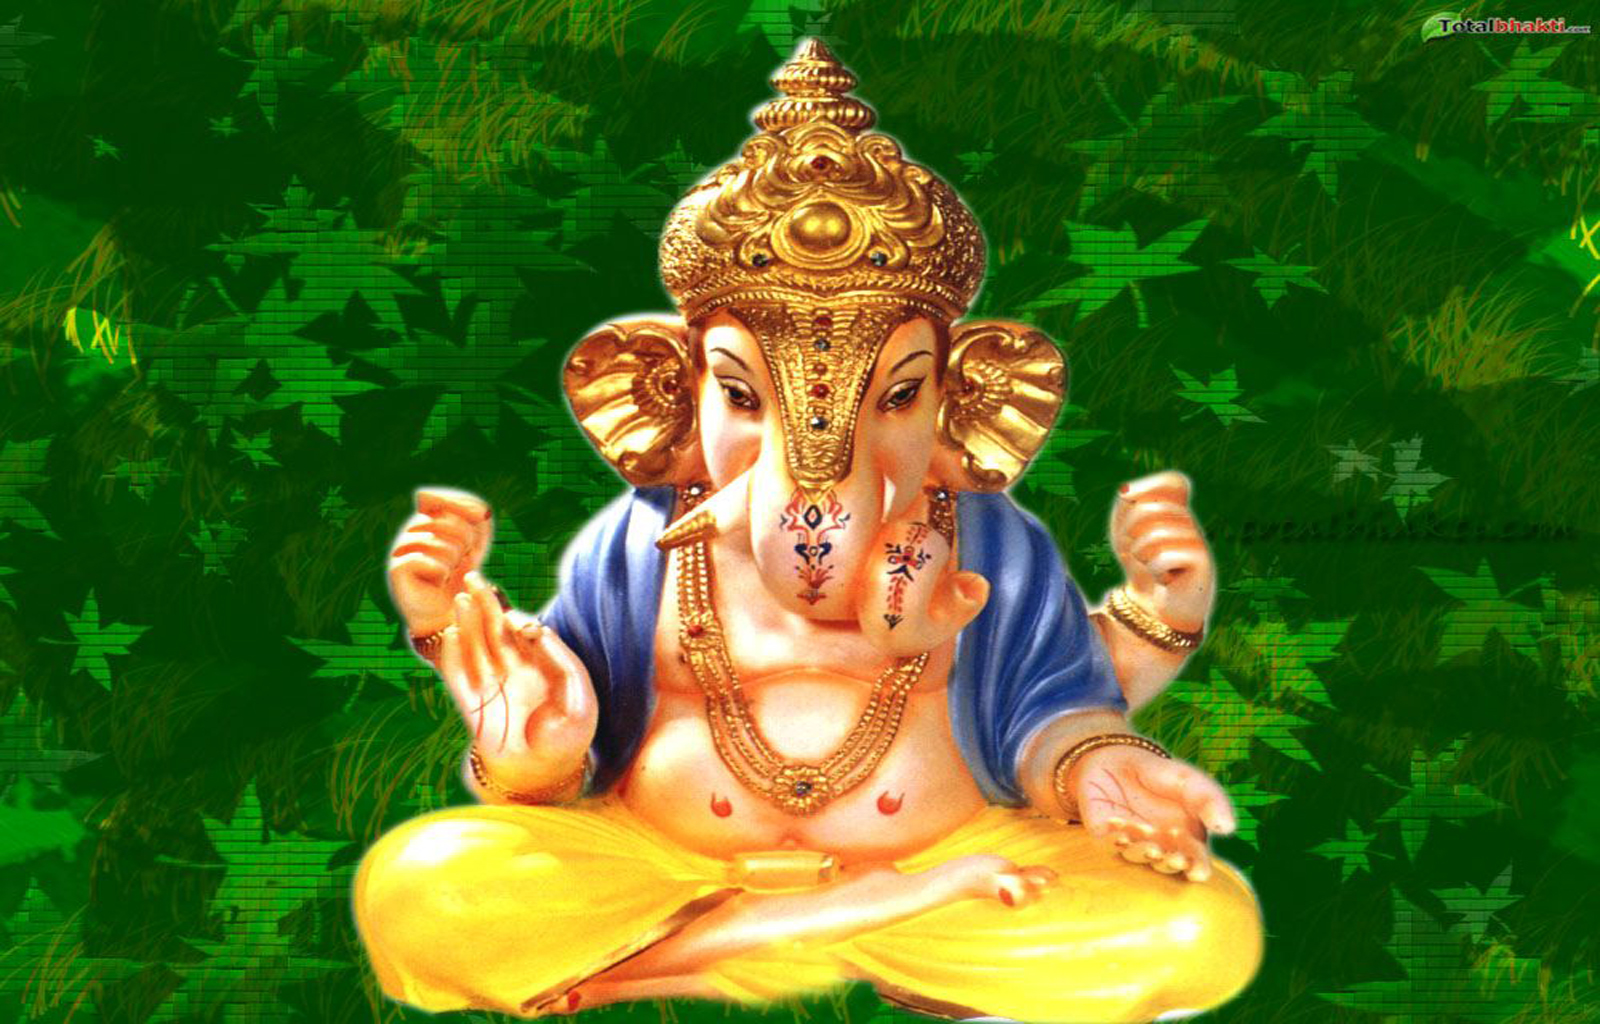 lord ganesha wallpaper computer background - photo #19